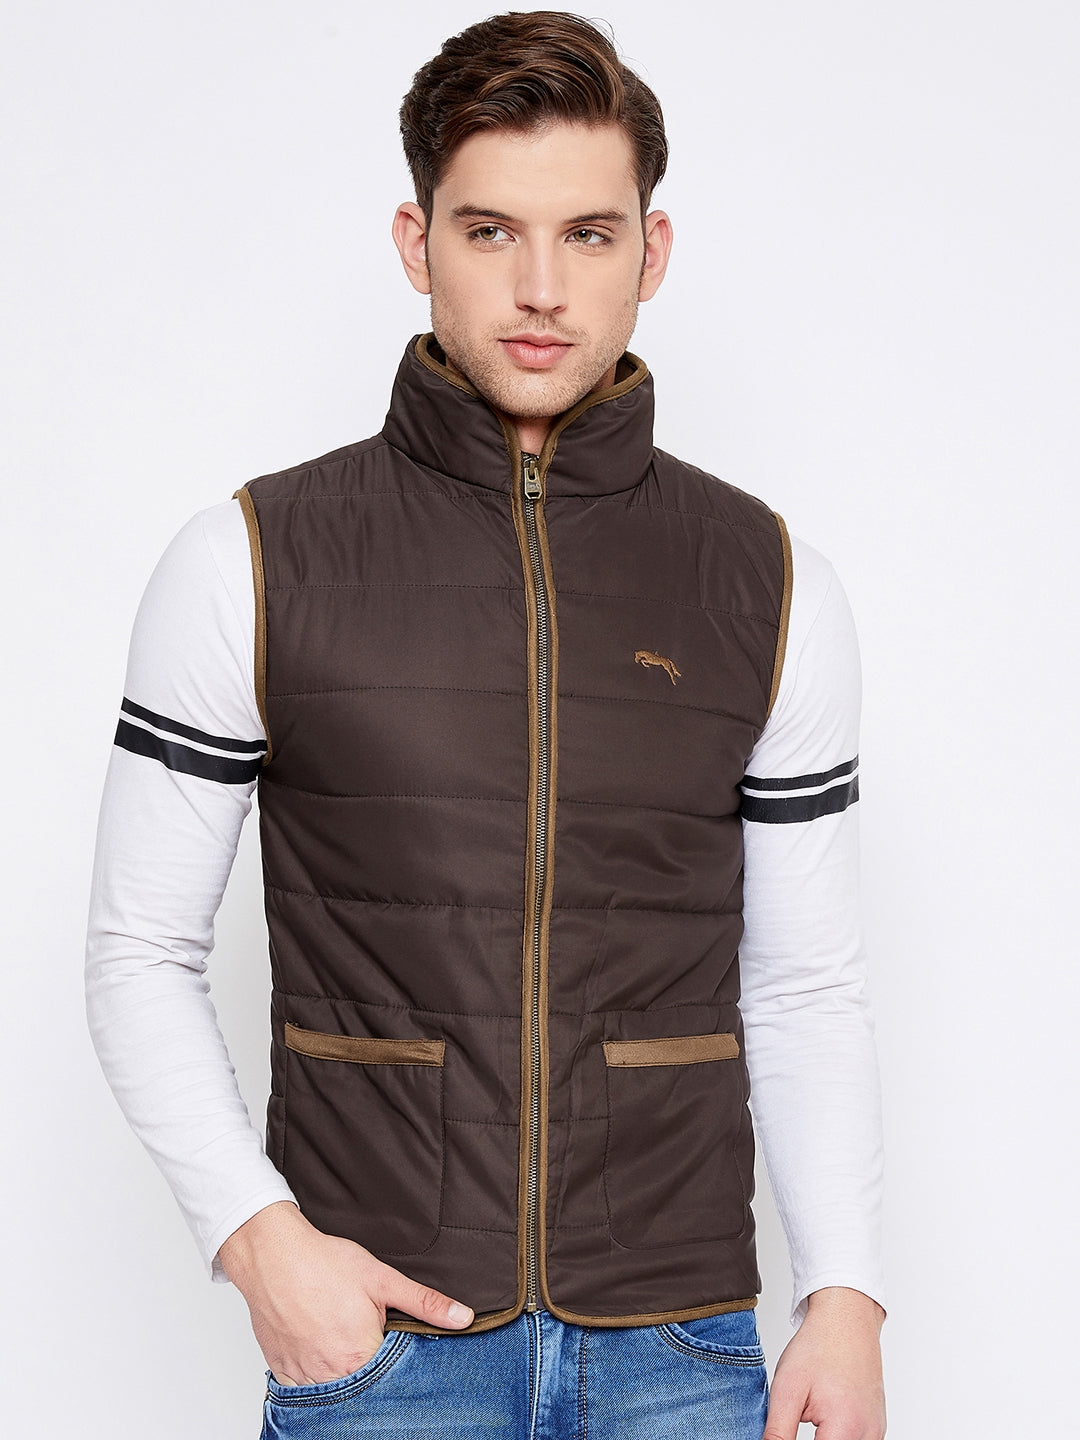 JUMP USA Men Coffee Brown Sleeveless Padded Jacket